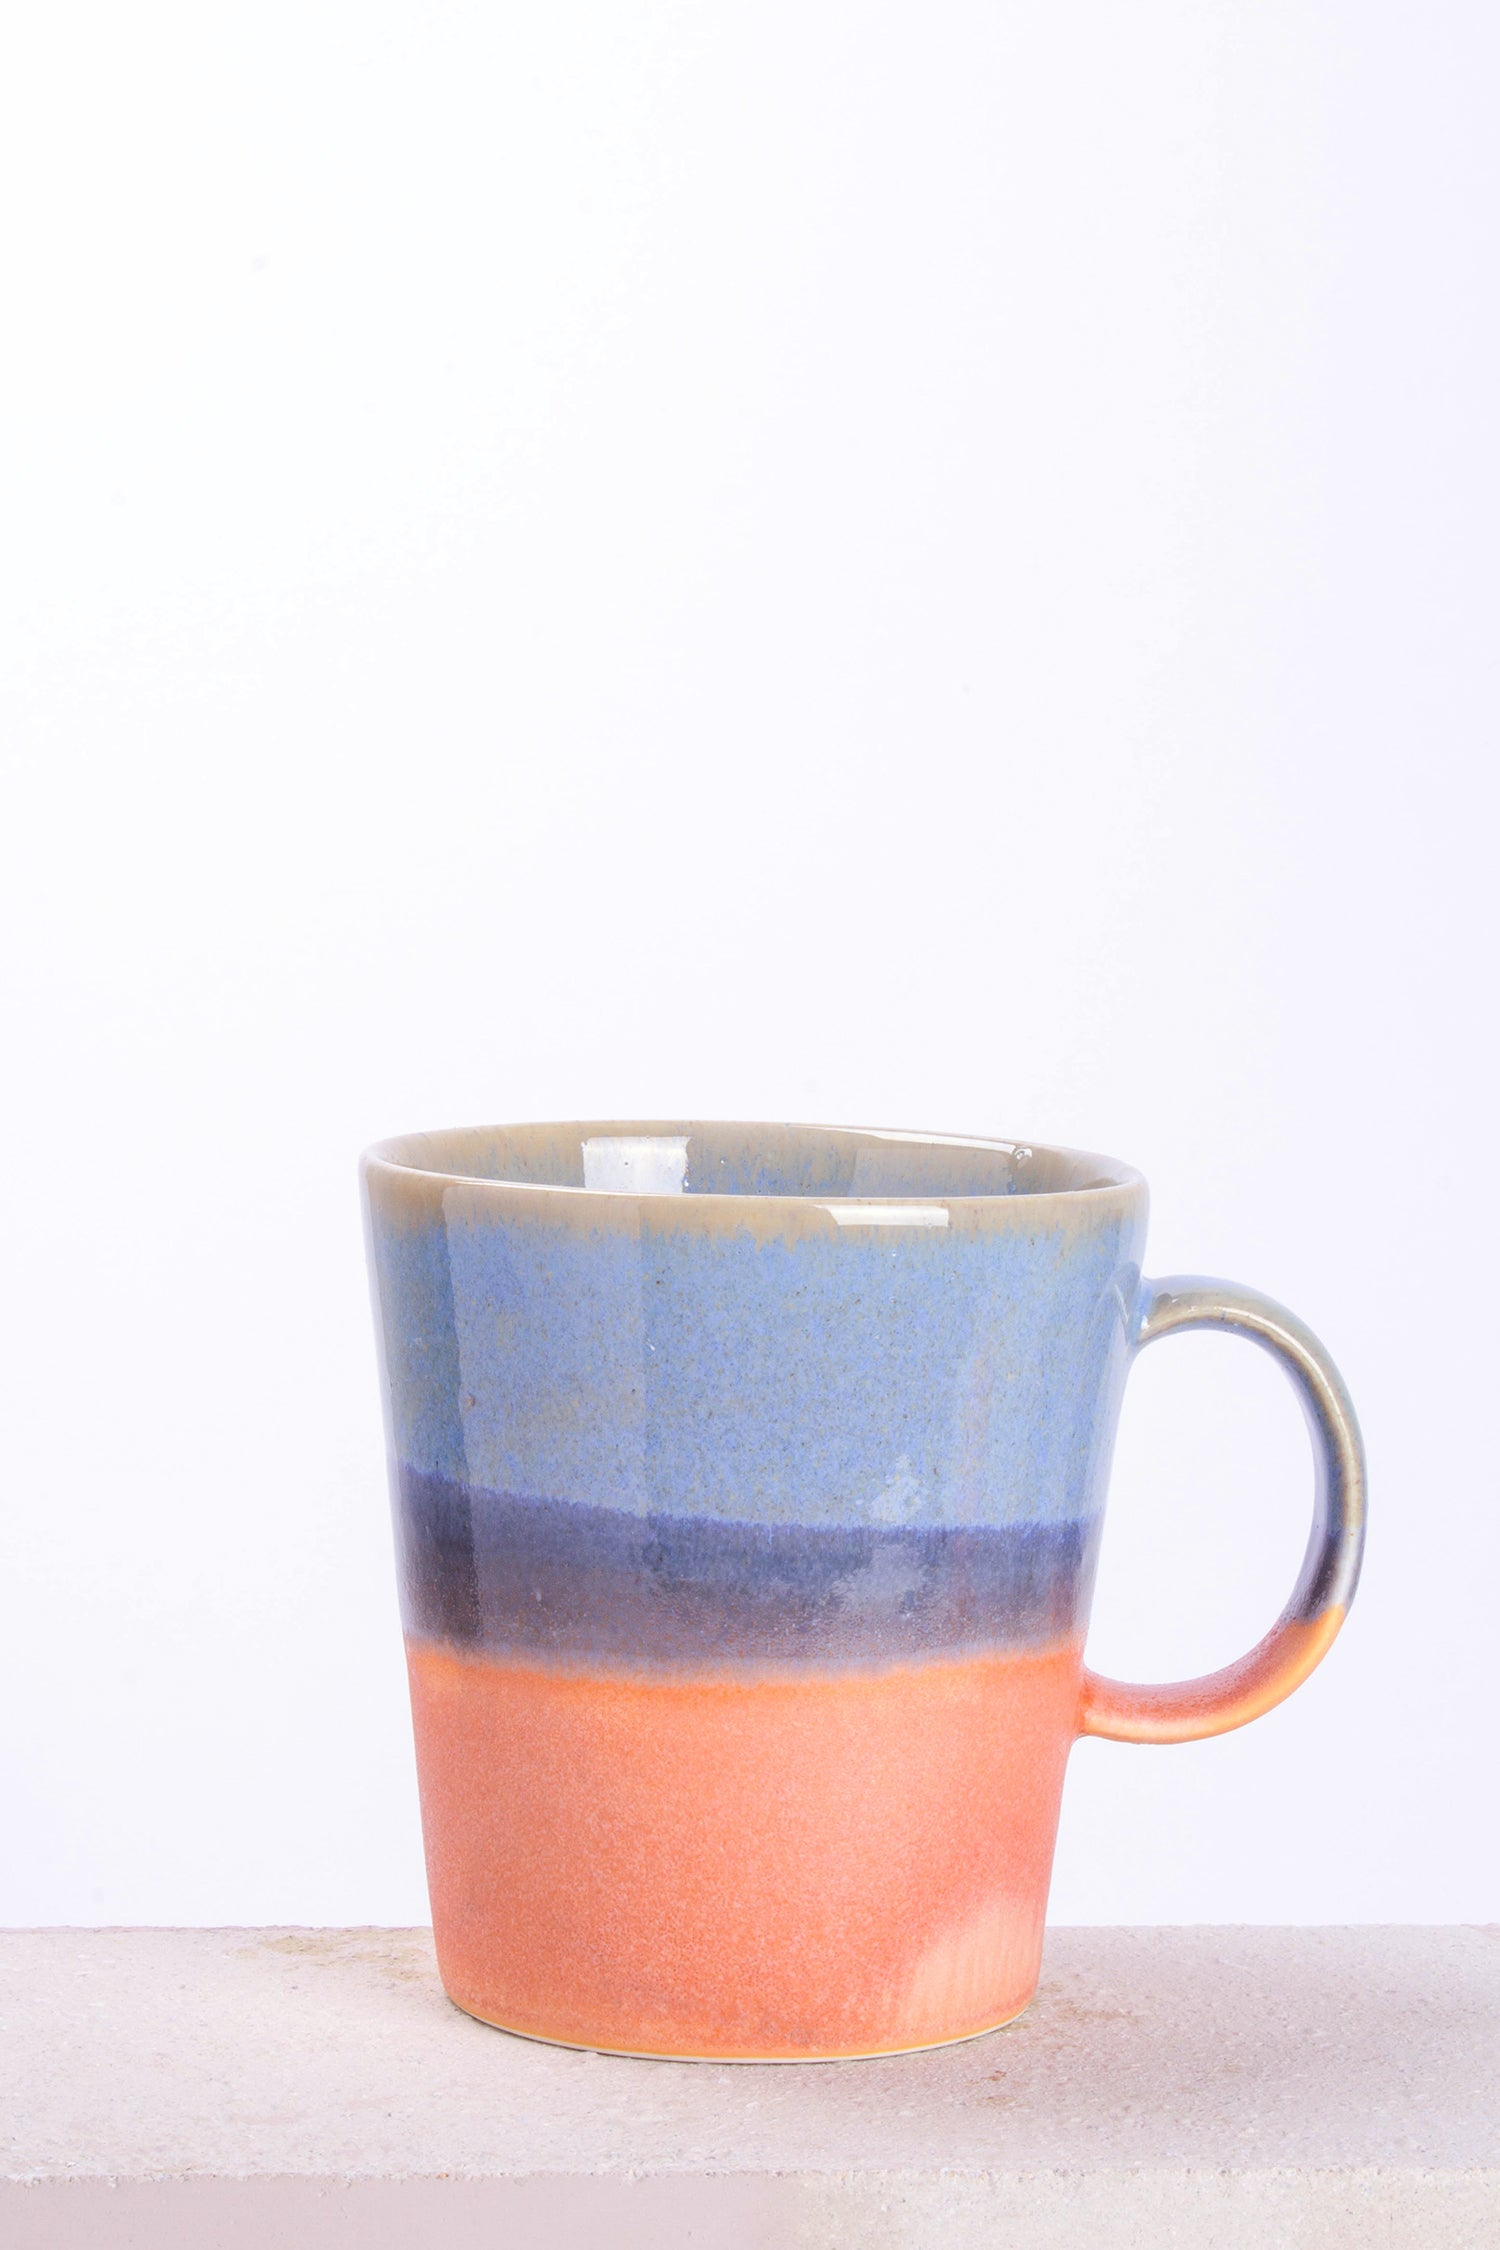 SGW LAB MUG - BEACH BLUSH